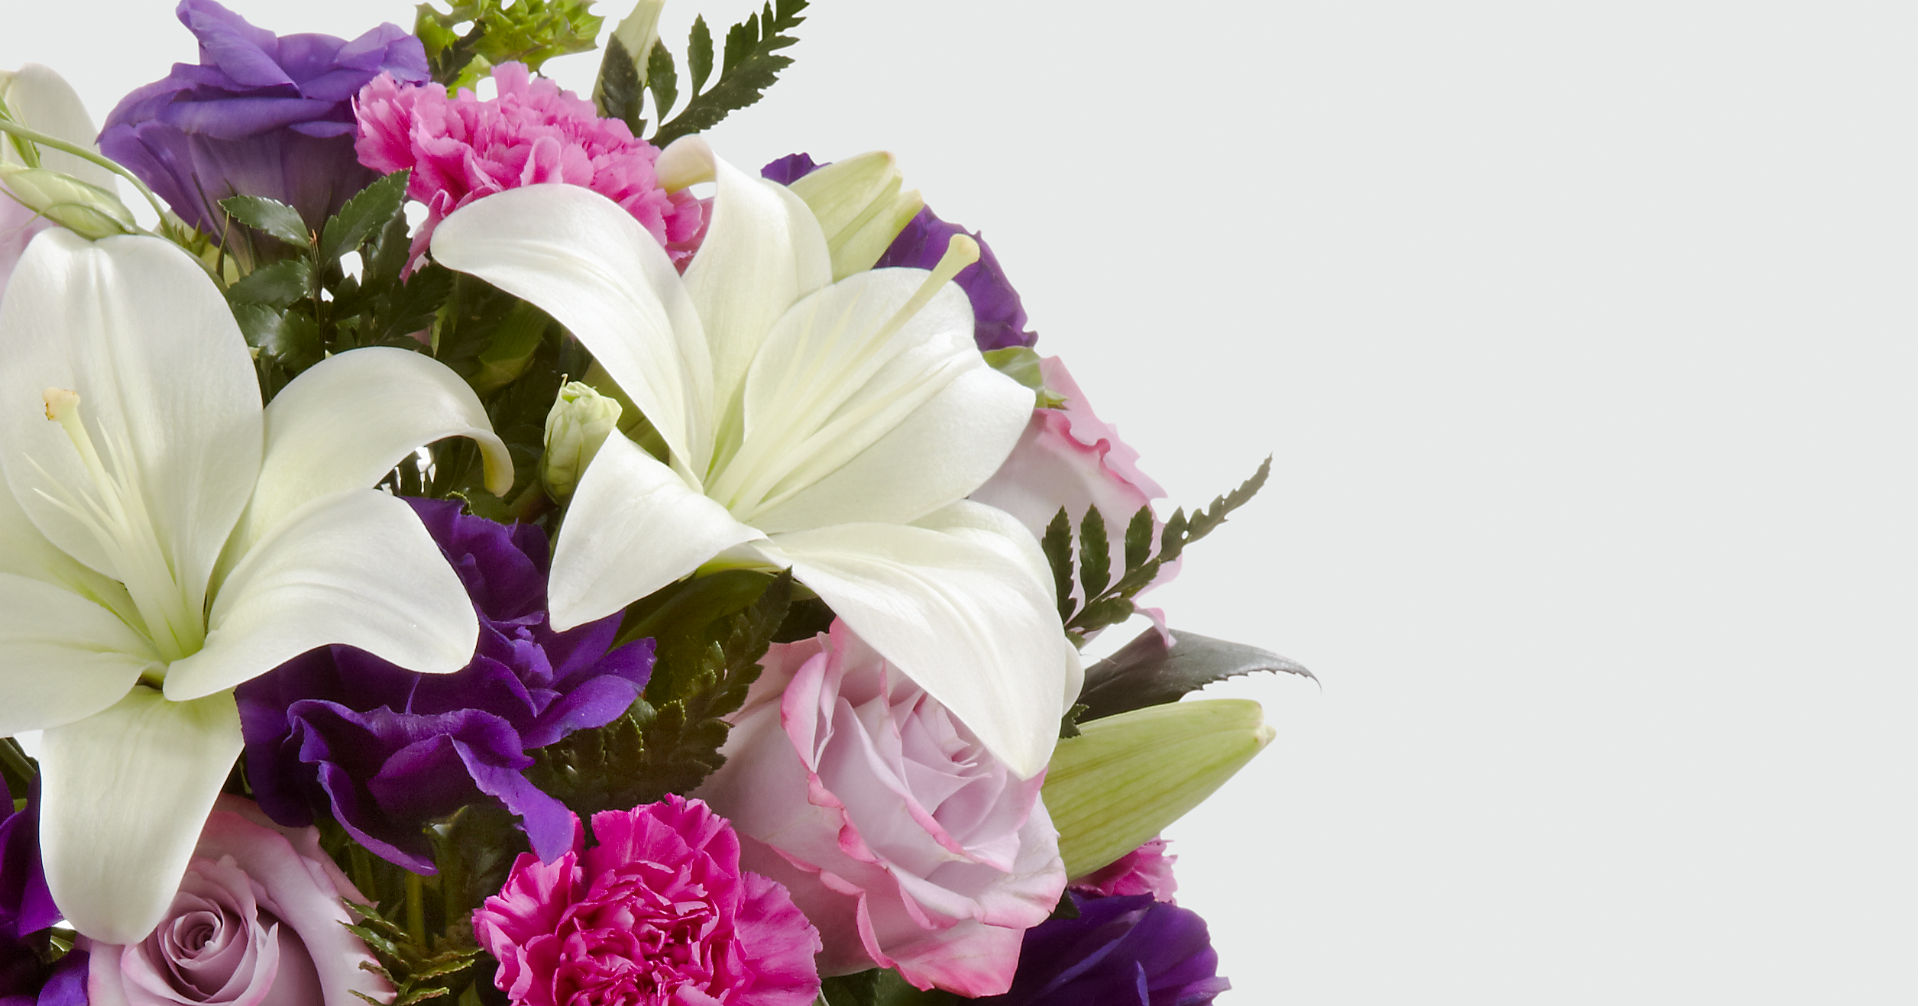 The Color Your Day With Beauty™ Bouquet - Image 2 Of 2